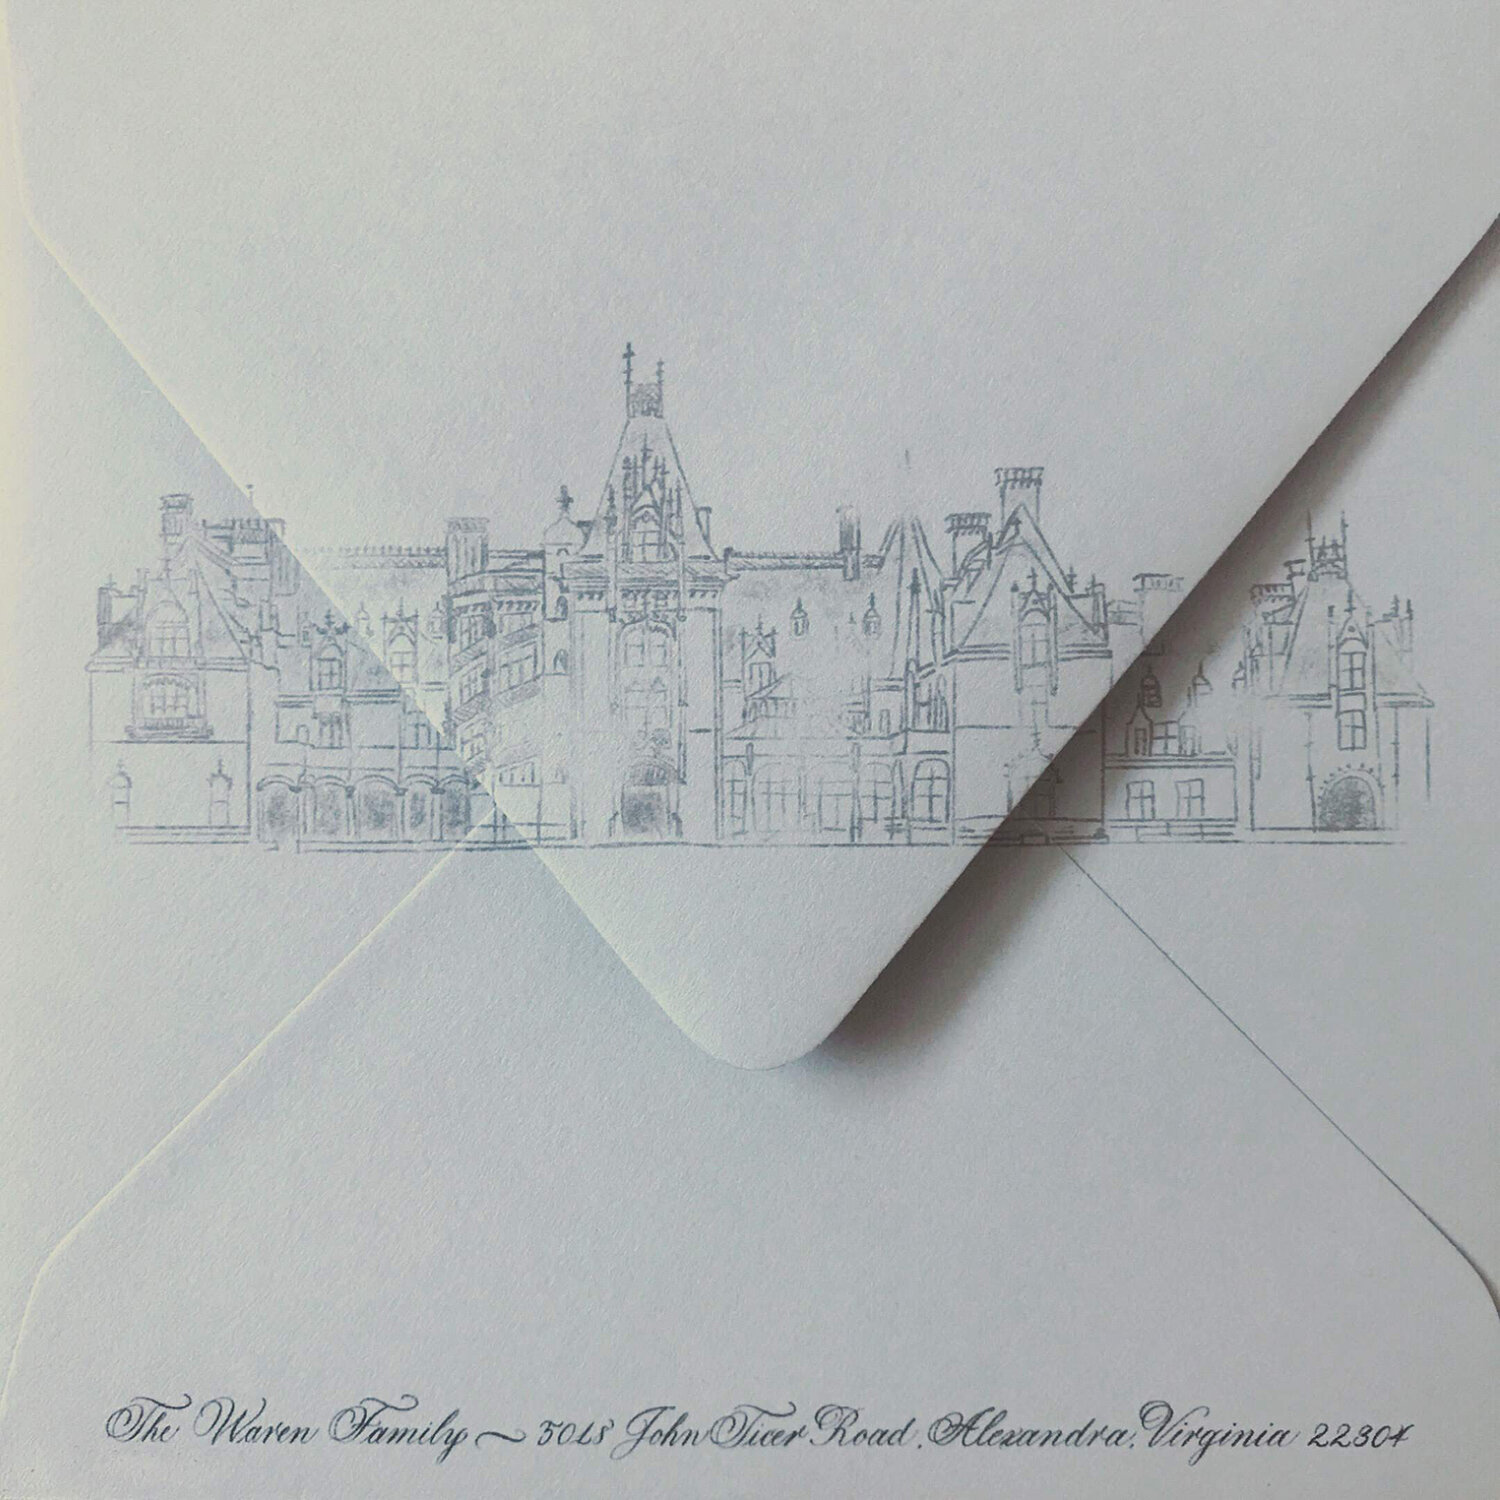 custom-wedding-venue-illustration-on-dusty-blue-envelope-handwritten-calligraphy-guest-address-by-leslie-and-paper-located-in-nj-new-jersey.jpg